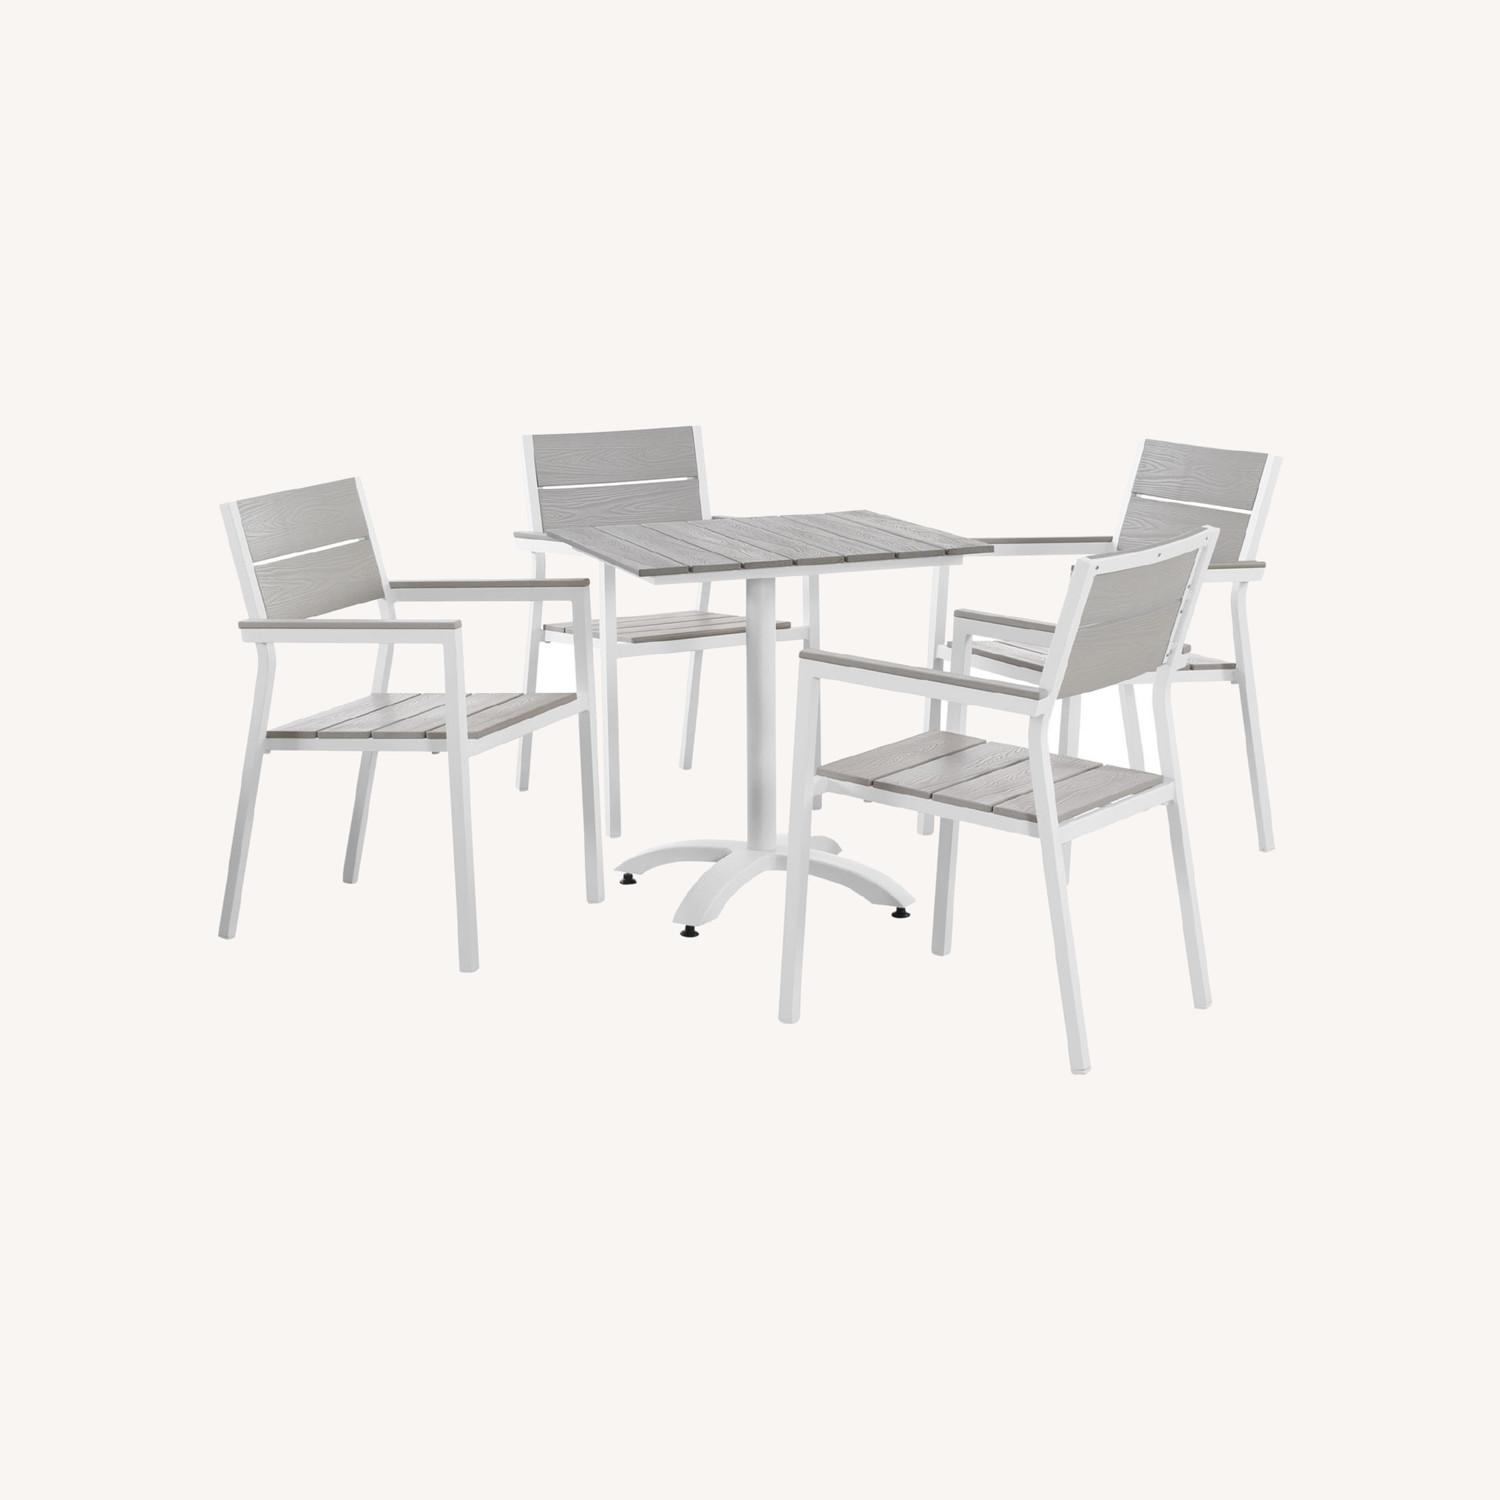 5-Piece Dining Set In Light Gray Wood Finish - image-7